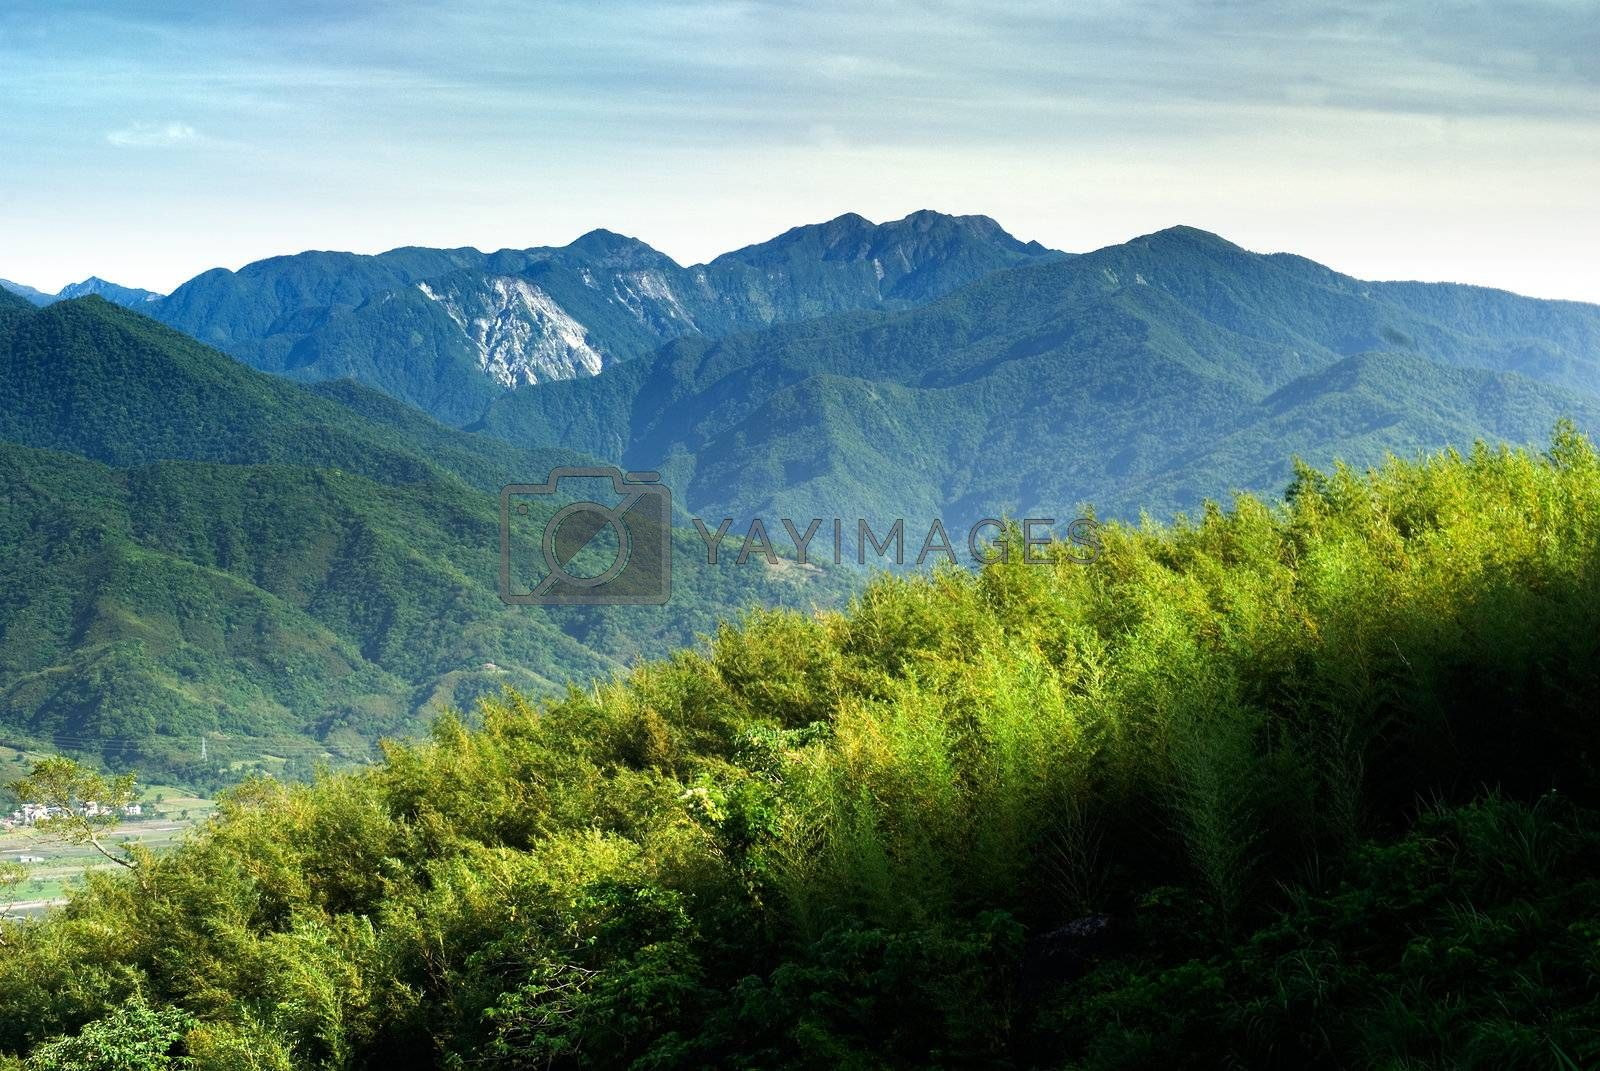 Here ard blue sky white clouds and green trees of mountain.